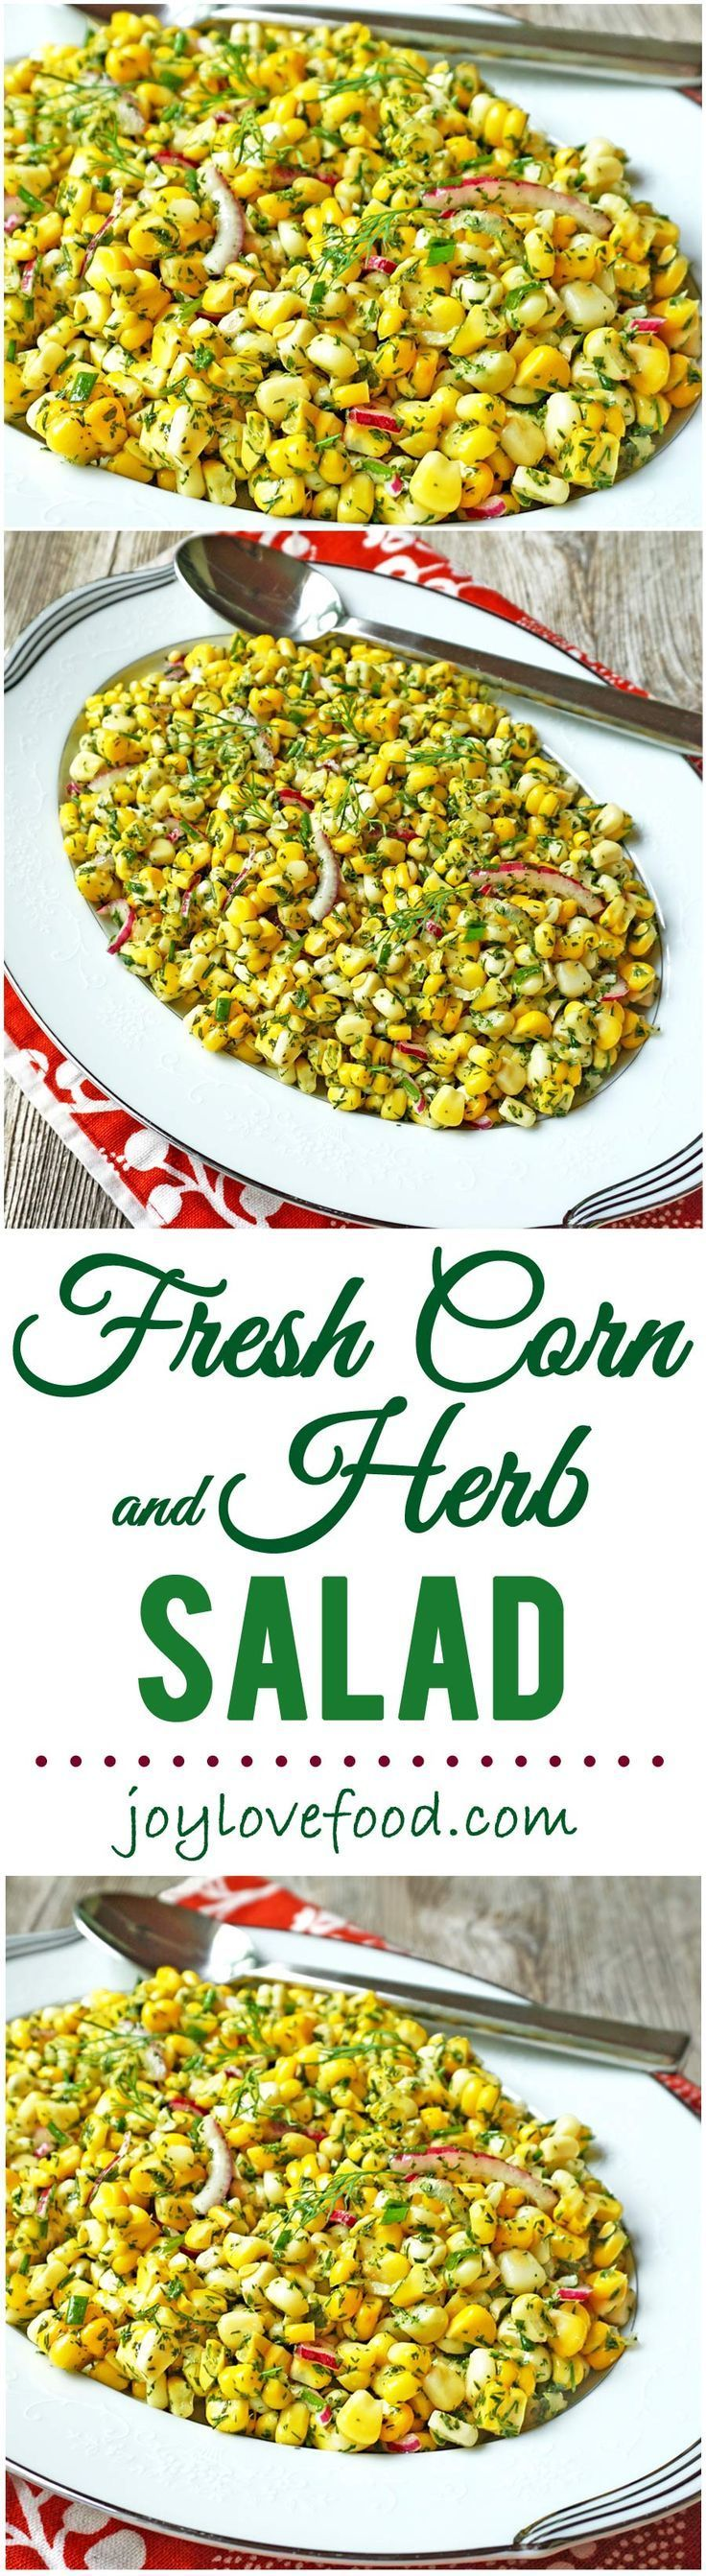 Fresh Corn and Herb Salad  this light and refreshing salad is full of flavor and a great side dish for a summer barbeque.